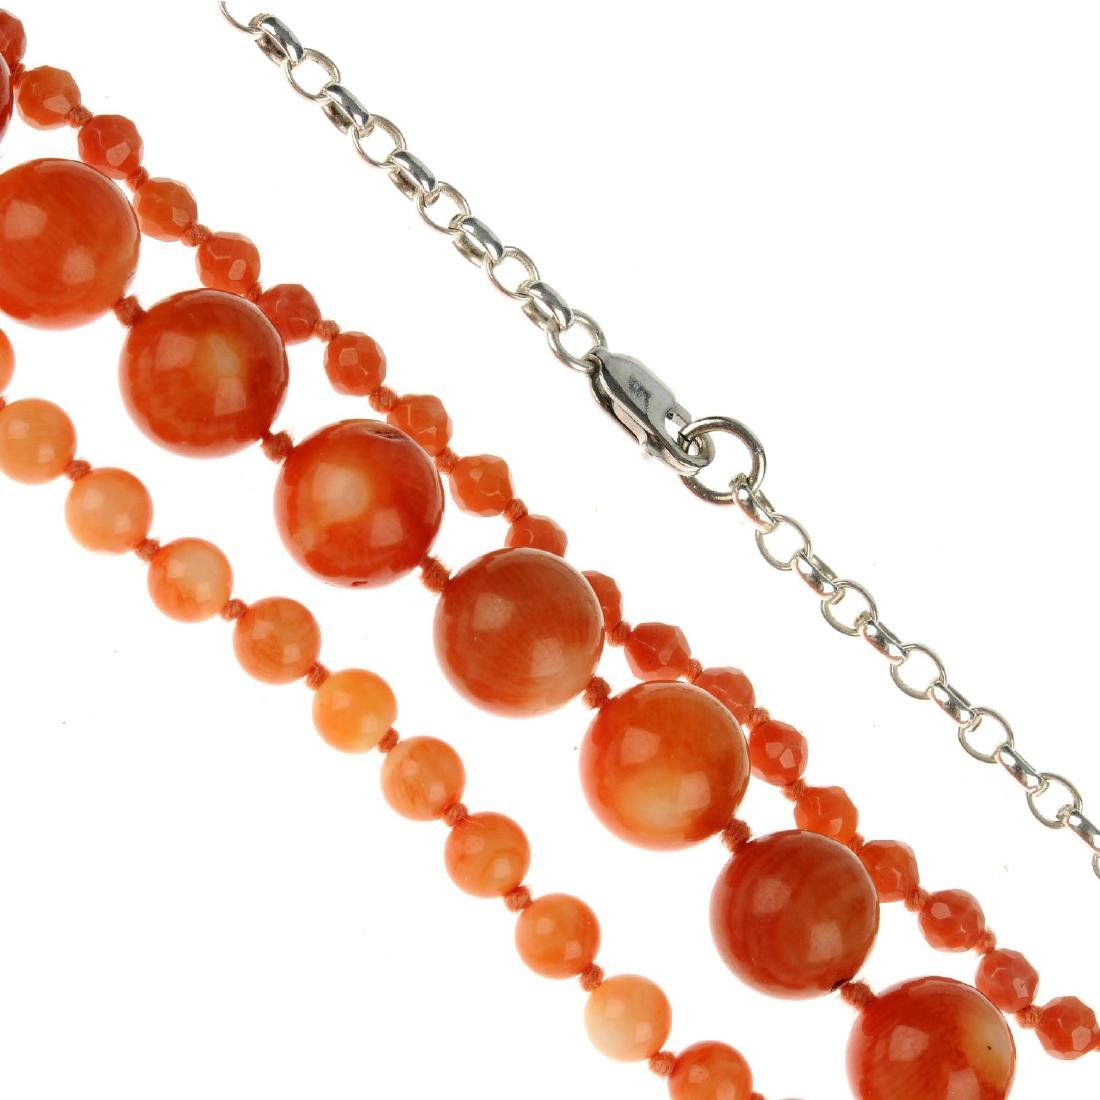 A three-row dyed coral bead necklace. Designed as a